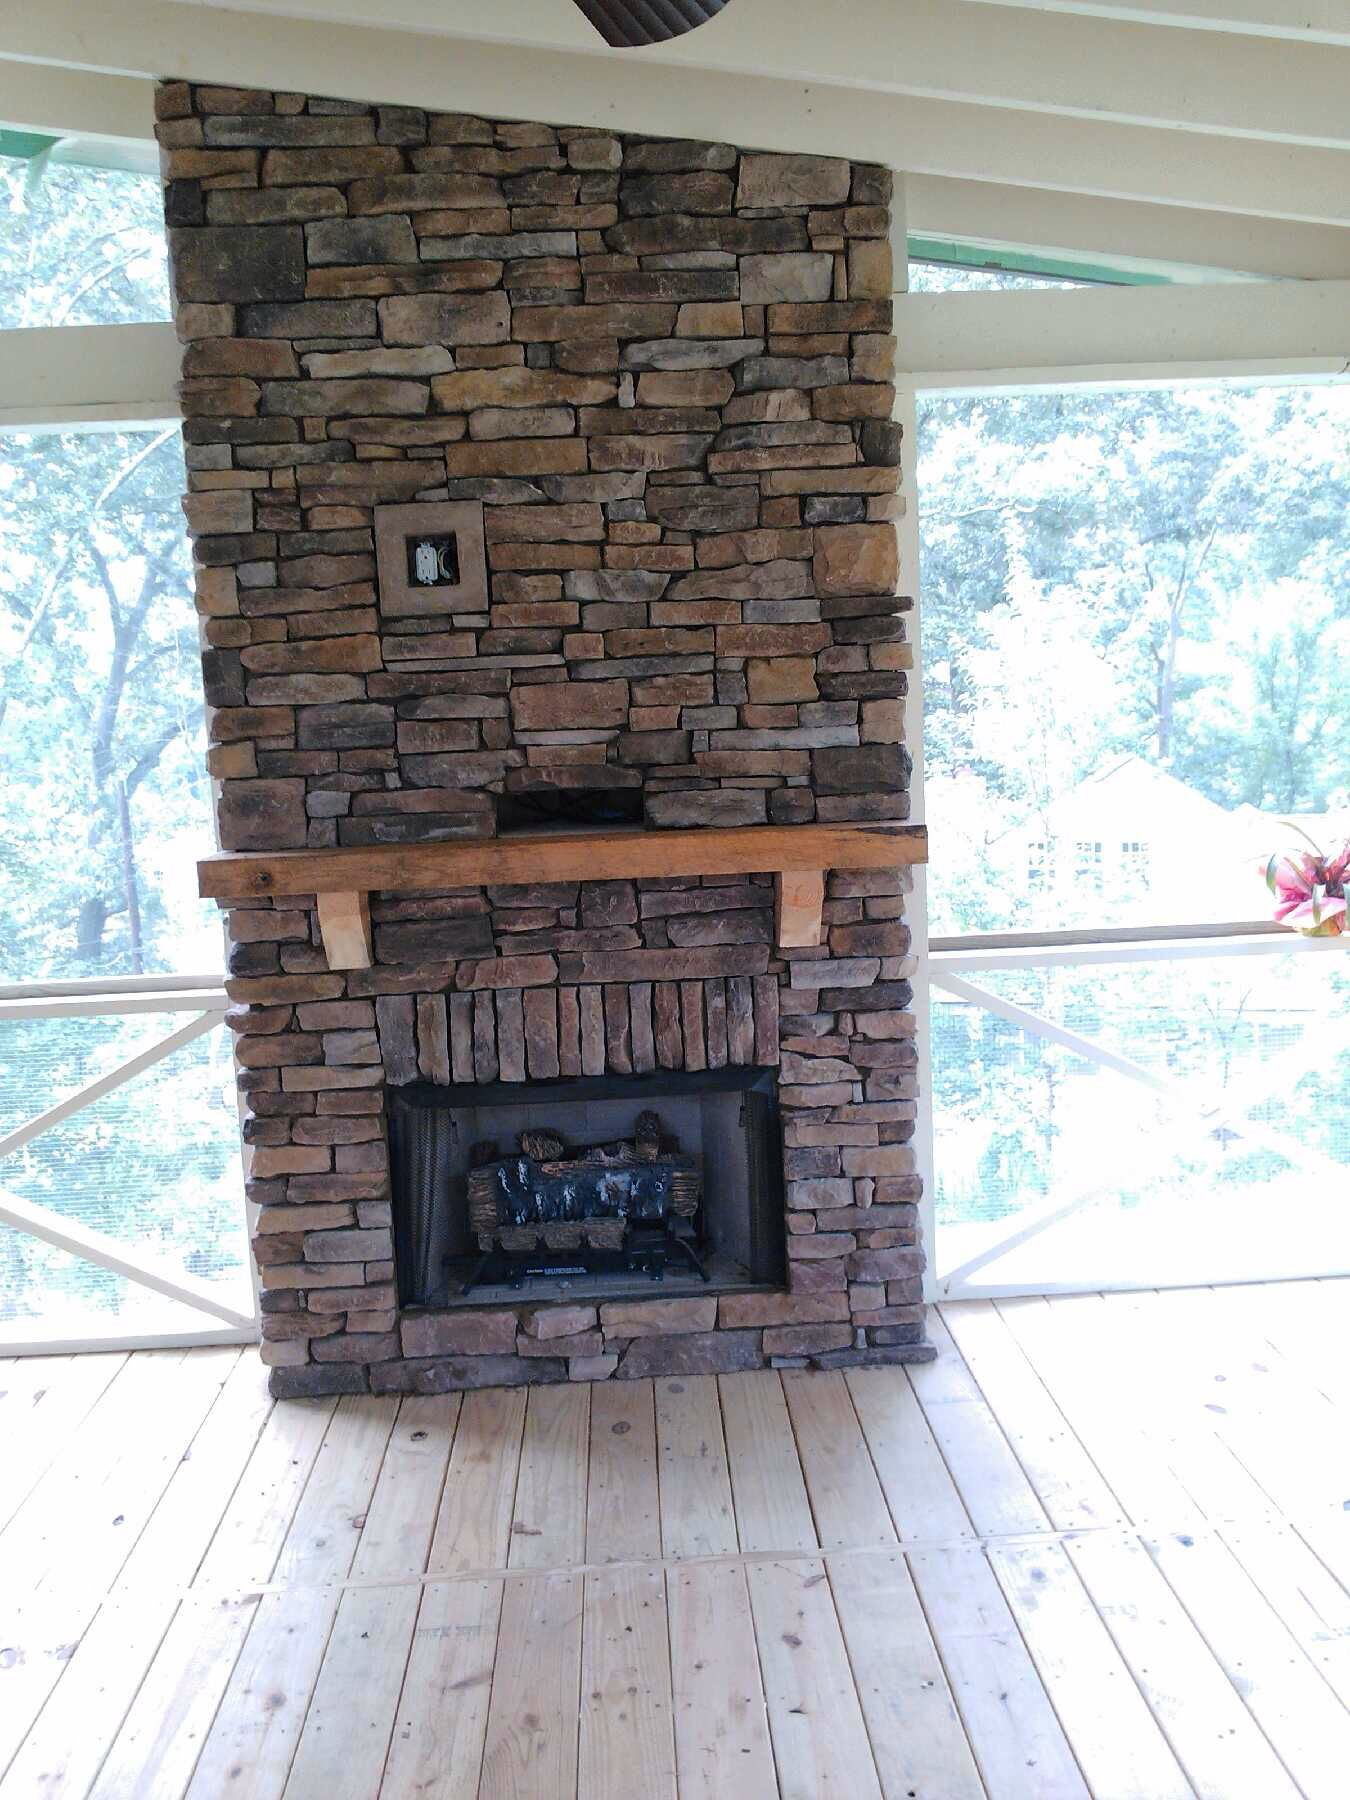 Outdoor Covered Patio With Fireplace Great Addition Idea Dream Dream Dream: Fireplace Remodel, Fireplace, Dream House